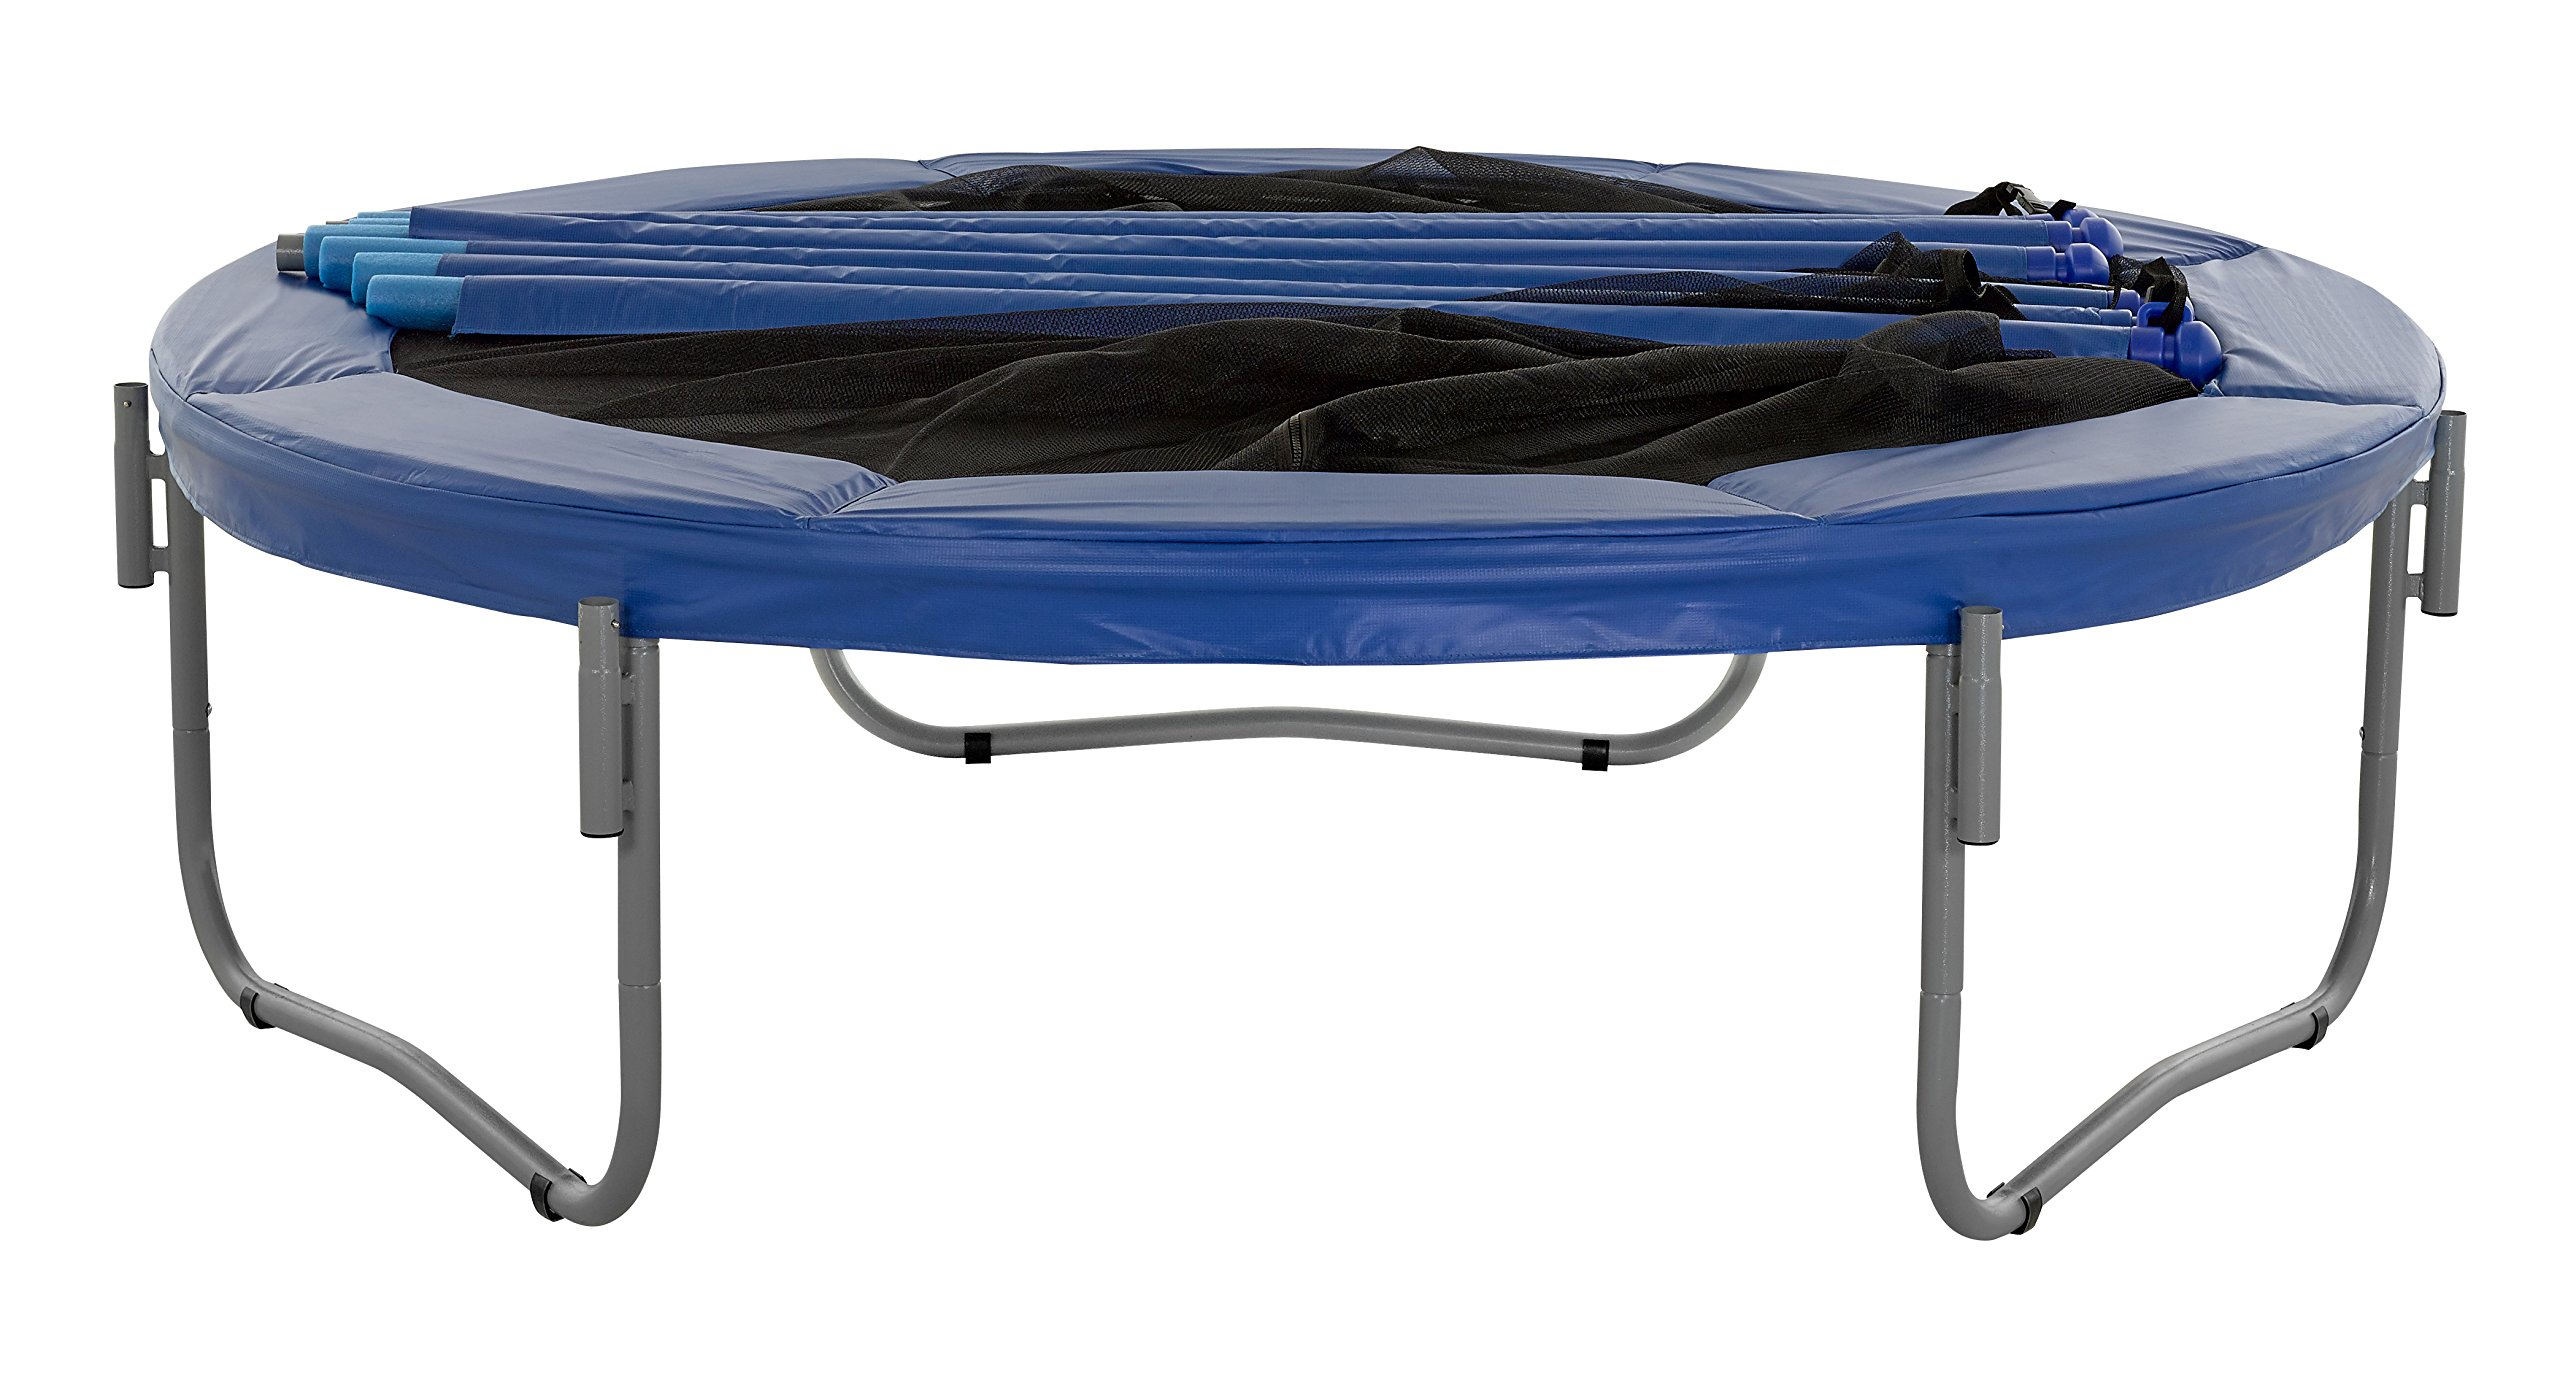 Upper Bounce 7.5 FT. Trampoline & Enclosure Set equipped with the New ''EASY ASSEMBLE FEATURE'' by Upper Bounce (Image #7)